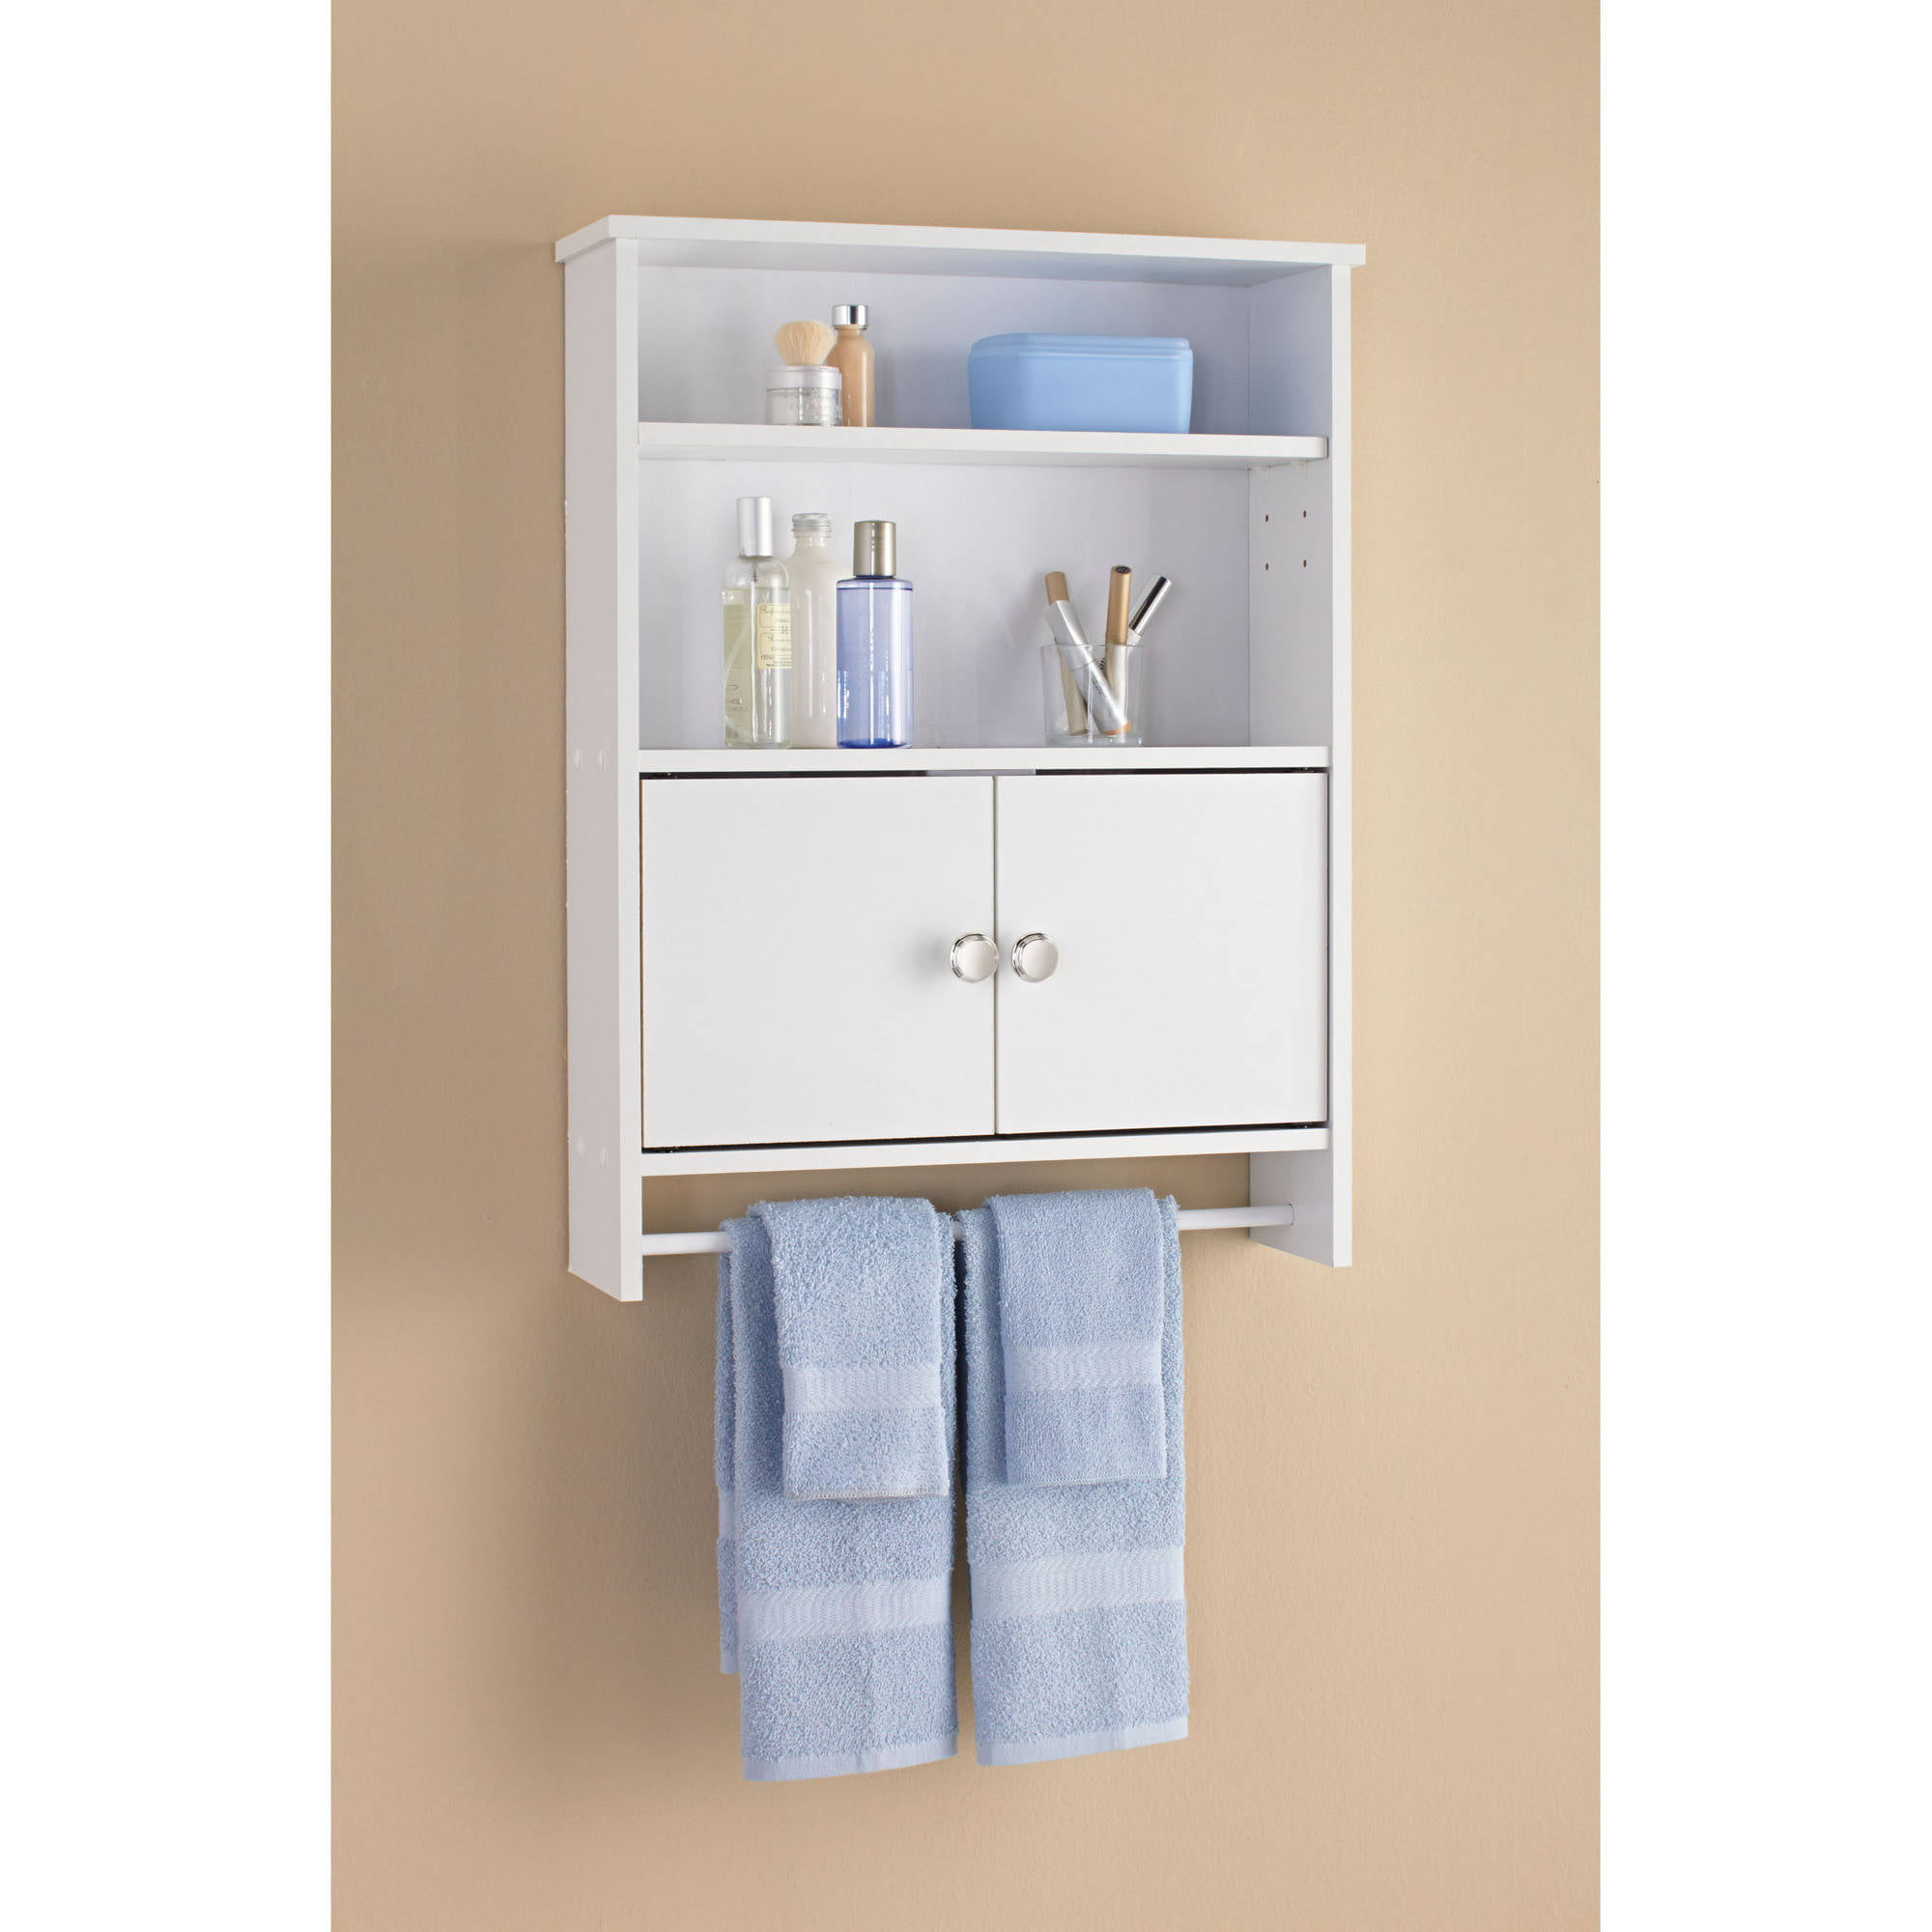 Walmart bathroom storage - Walmart Bathroom Storage 3